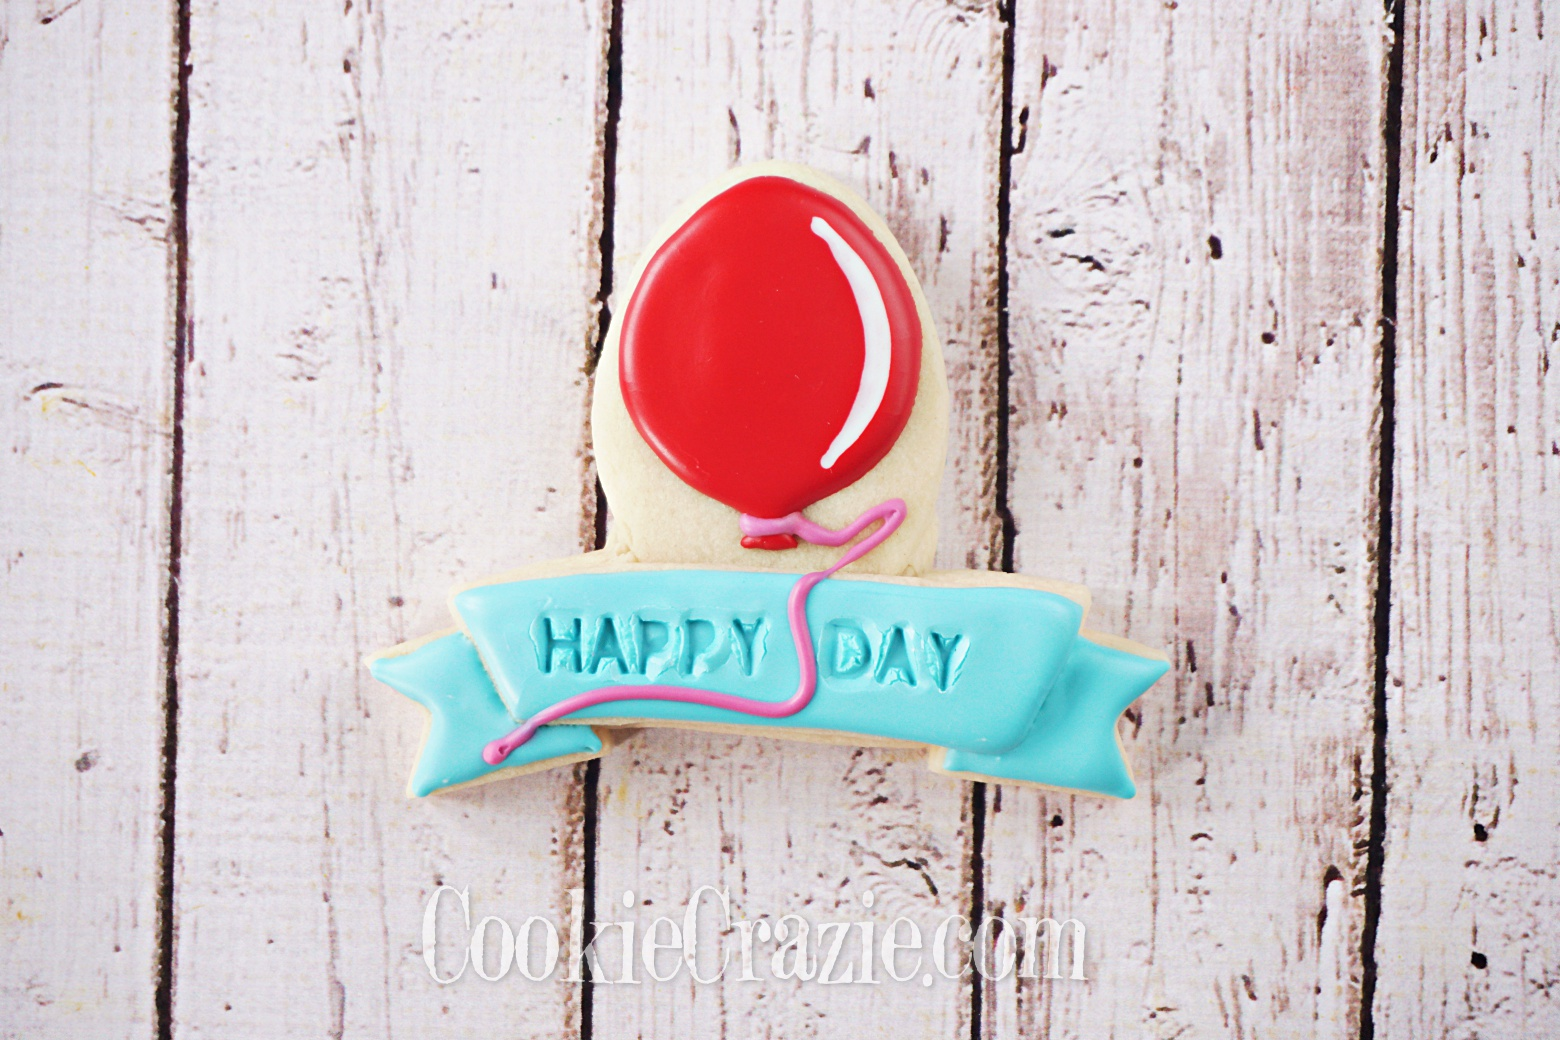 Birthday Balloon Banner Decorated Sugar Cookie YouTube video  HERE